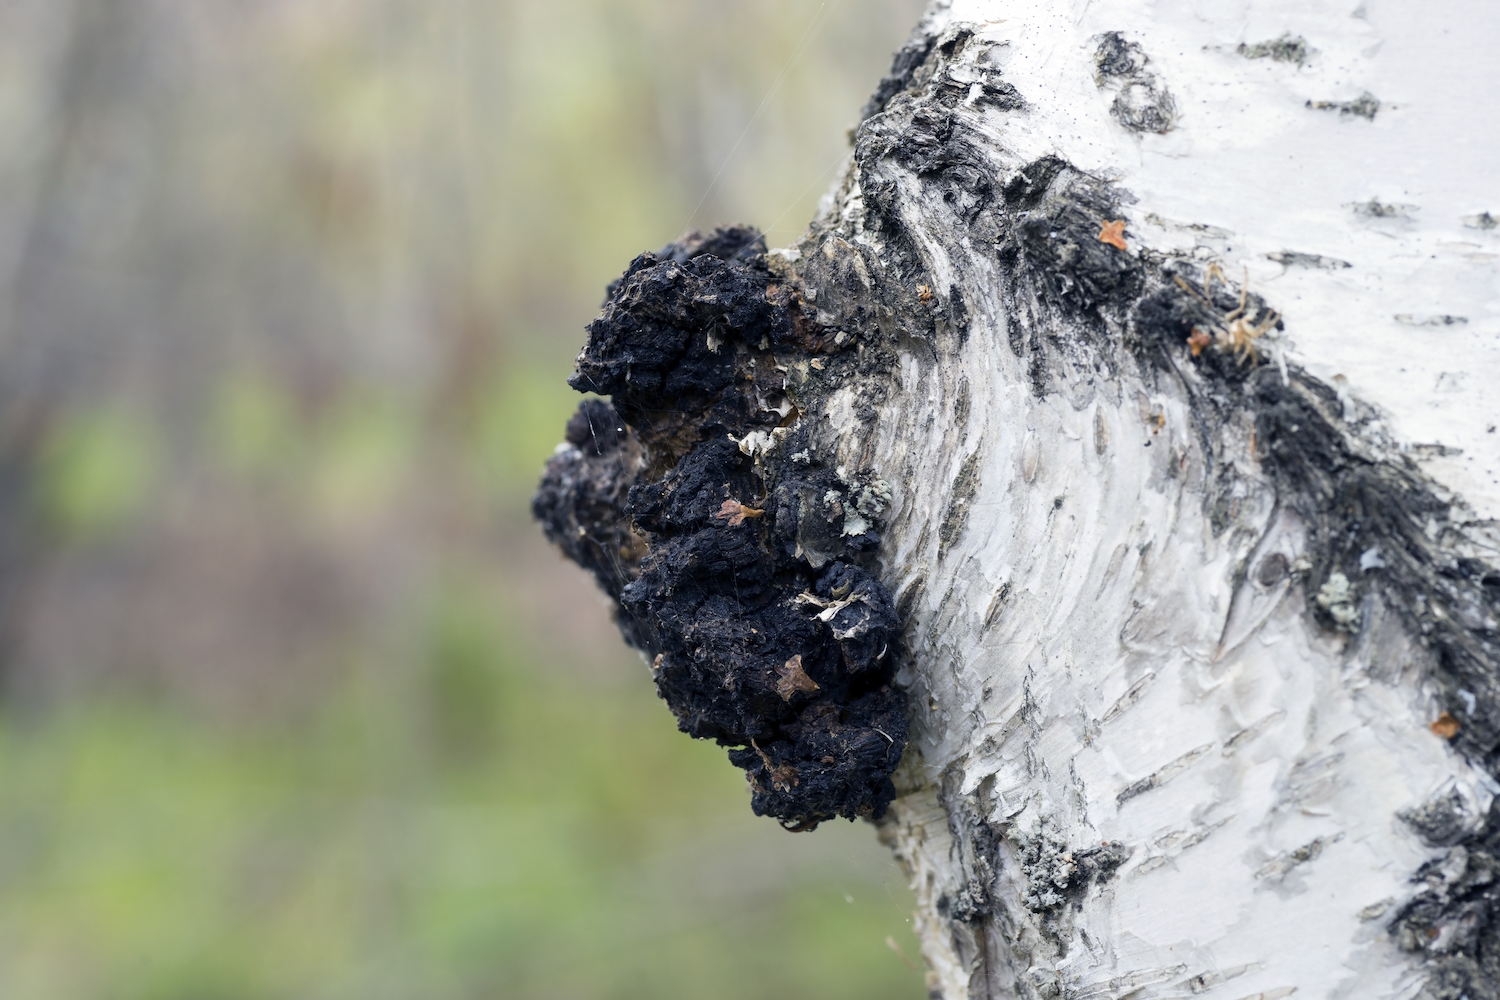 Chaga as you would find it on a birch tree.